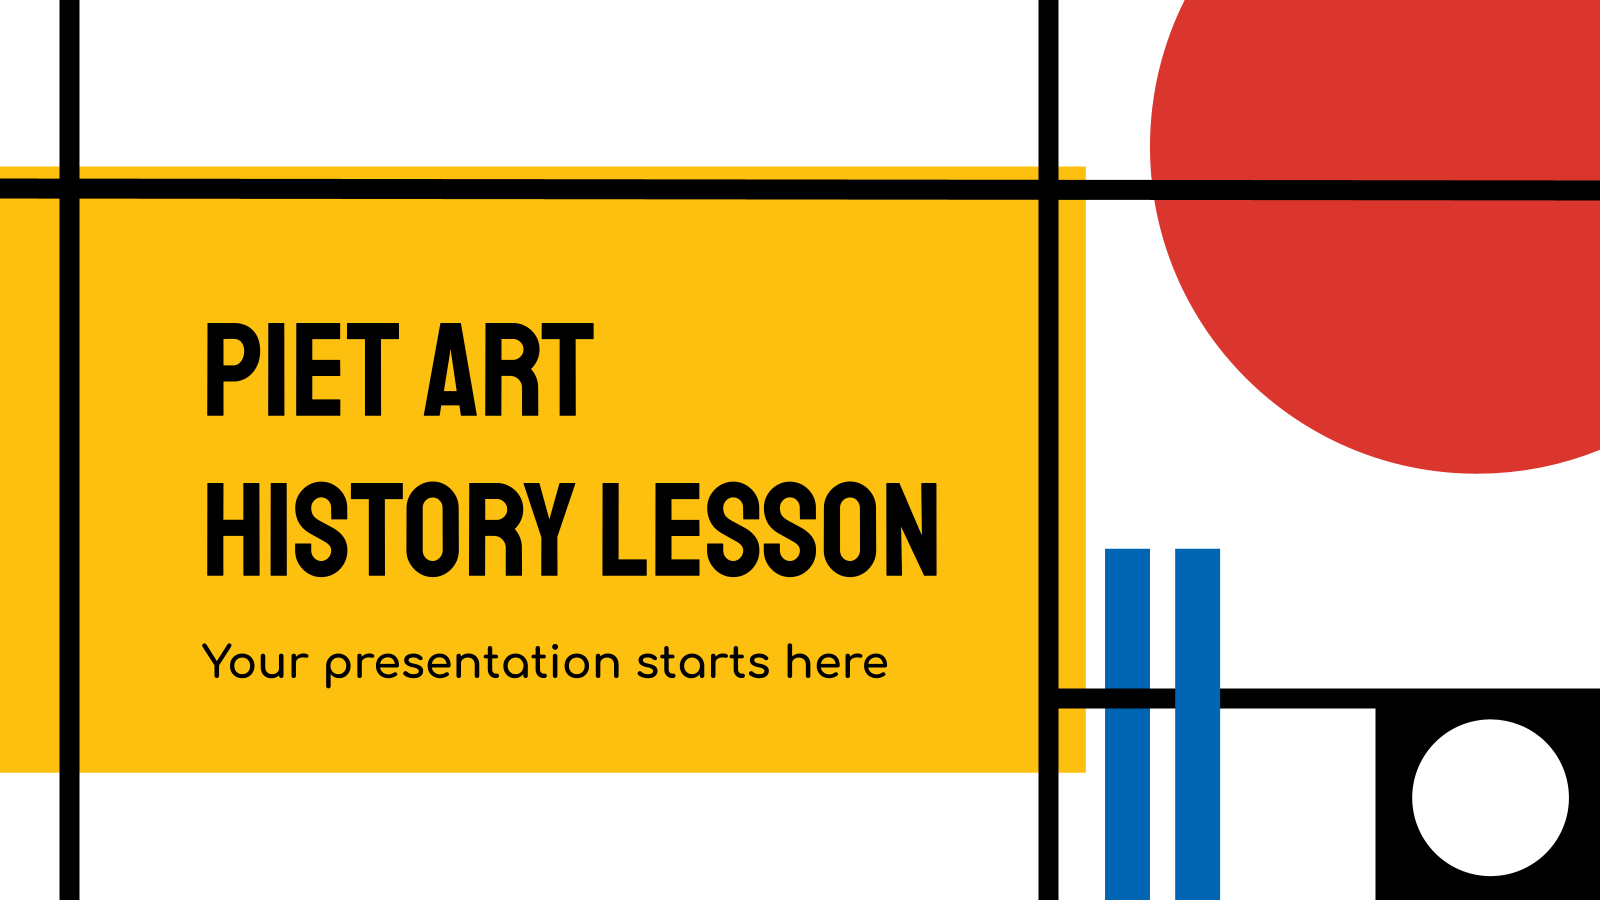 Piet Art History Lesson presentation template